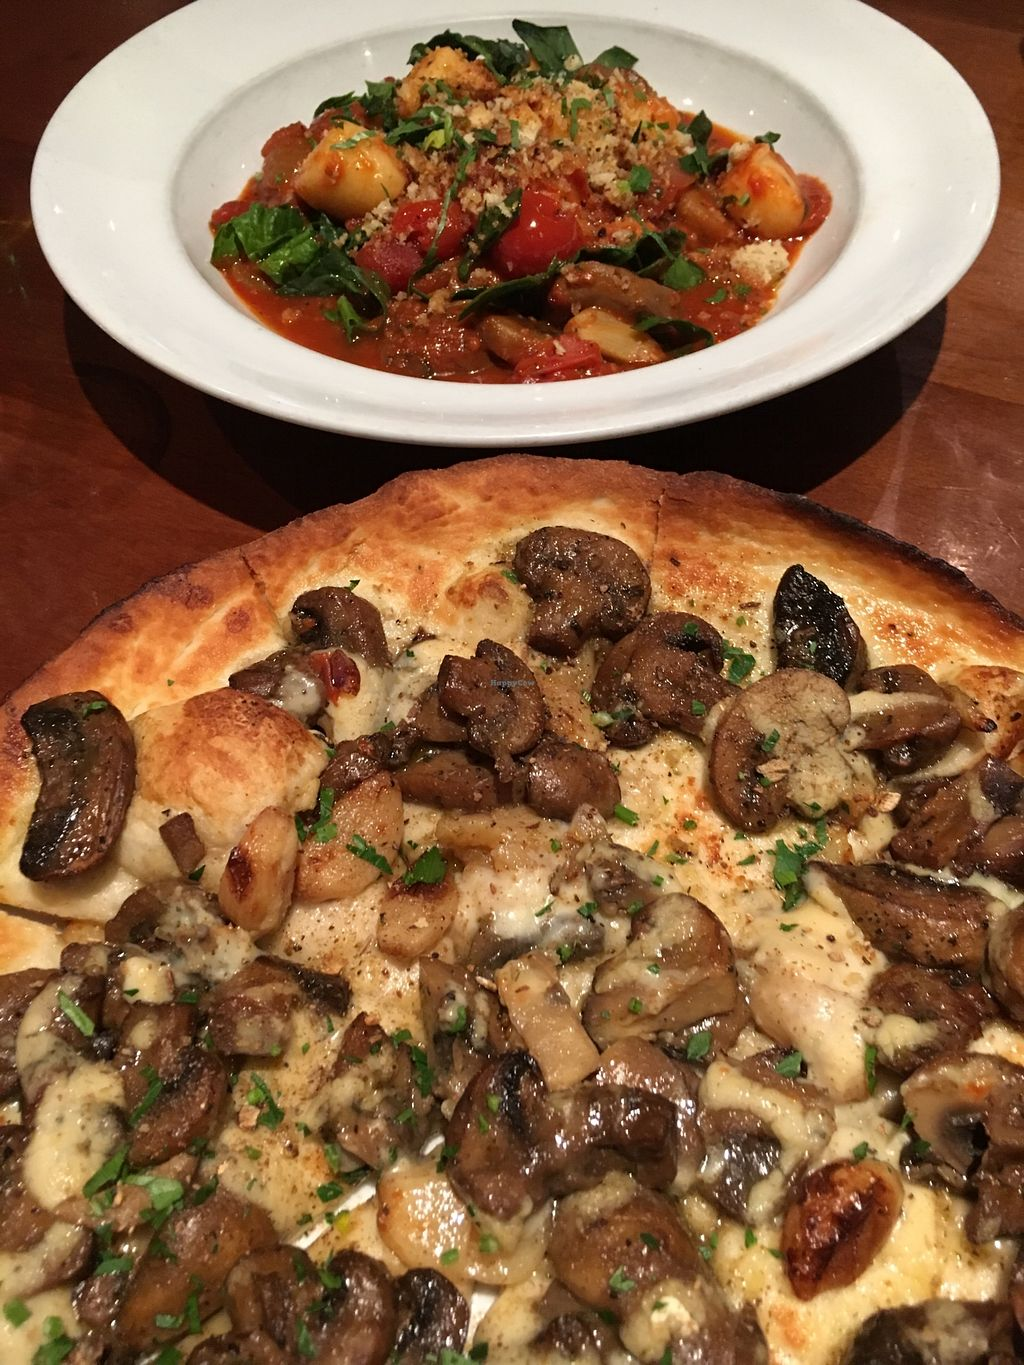 "Photo of Farelli's Trattoria  by <a href=""/members/profile/sousuneautrelentille"">sousuneautrelentille</a> <br/>Mushroom pizza (bottom) and gnocchi (top) <br/> March 2, 2018  - <a href='/contact/abuse/image/68261/365704'>Report</a>"